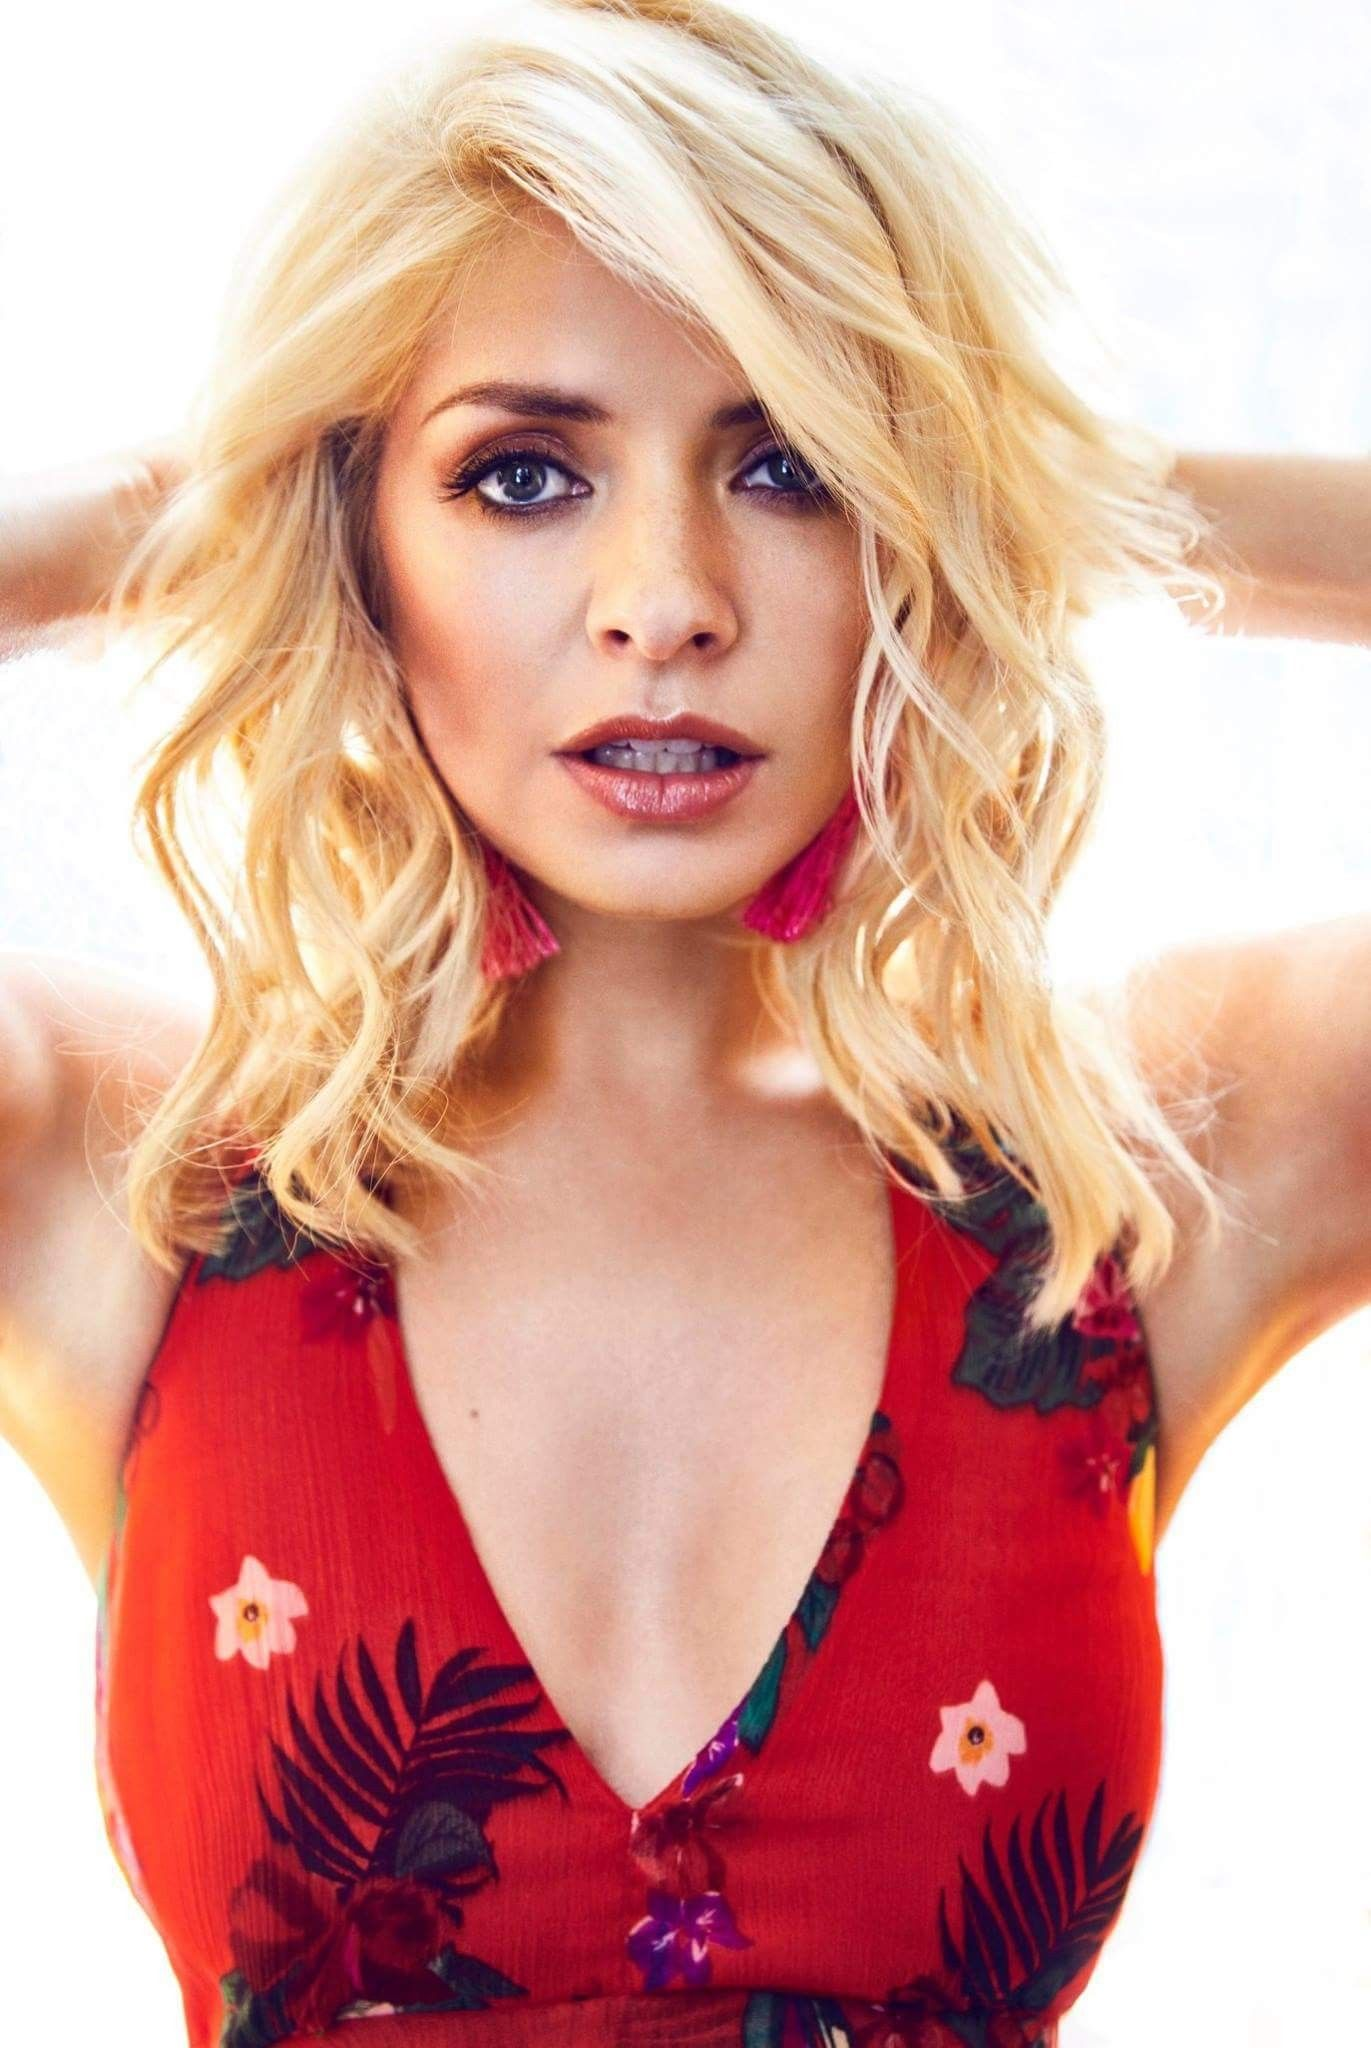 Holly Willoughby Photoshoot